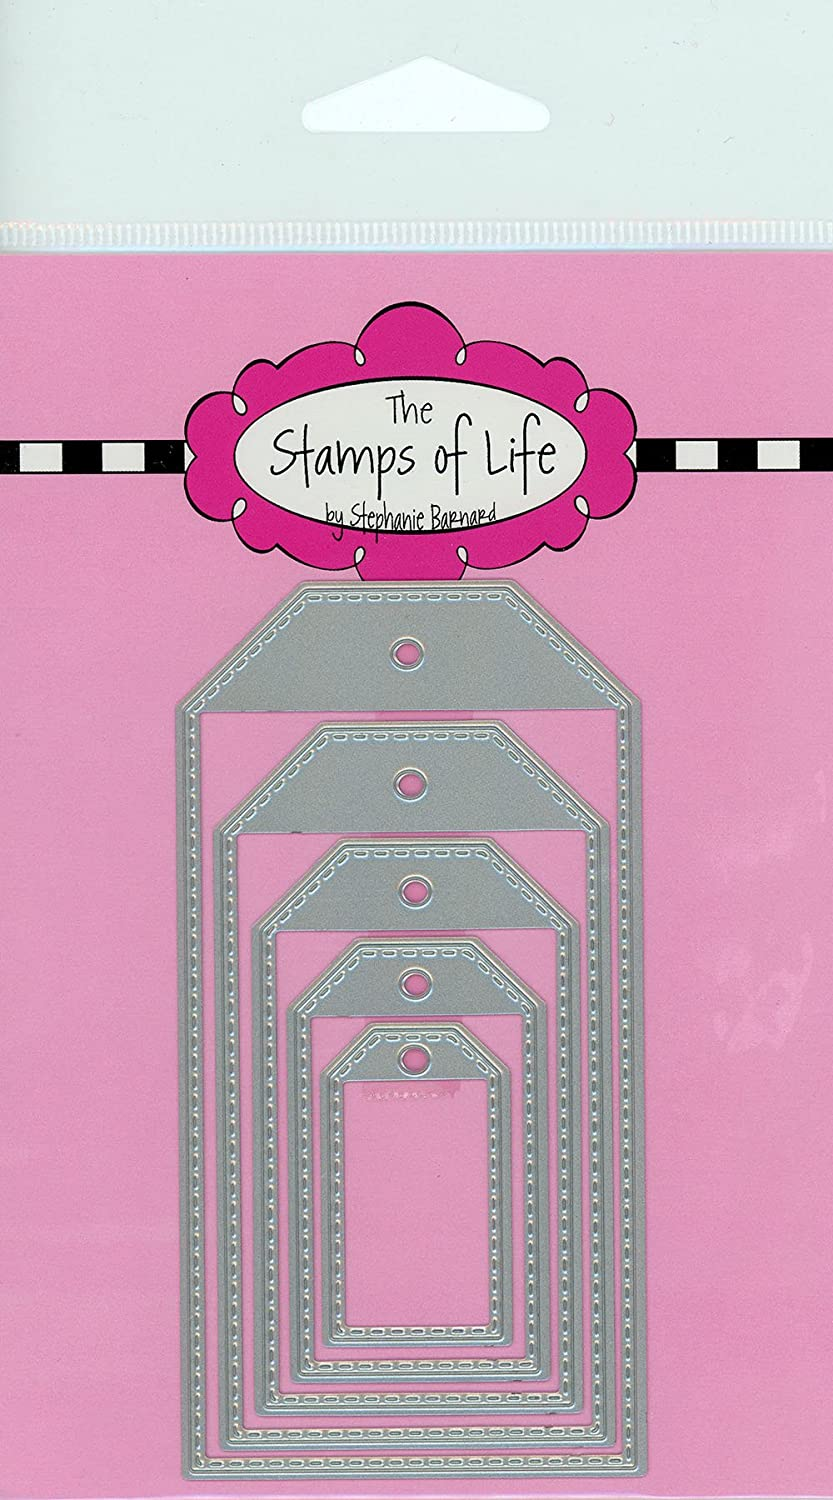 The Stamps of Life Stitched Tags Christmas Die Cuts for Card Making and Scrapbooking Supplies by Stephanie Barnard - Gift Tags and Labels